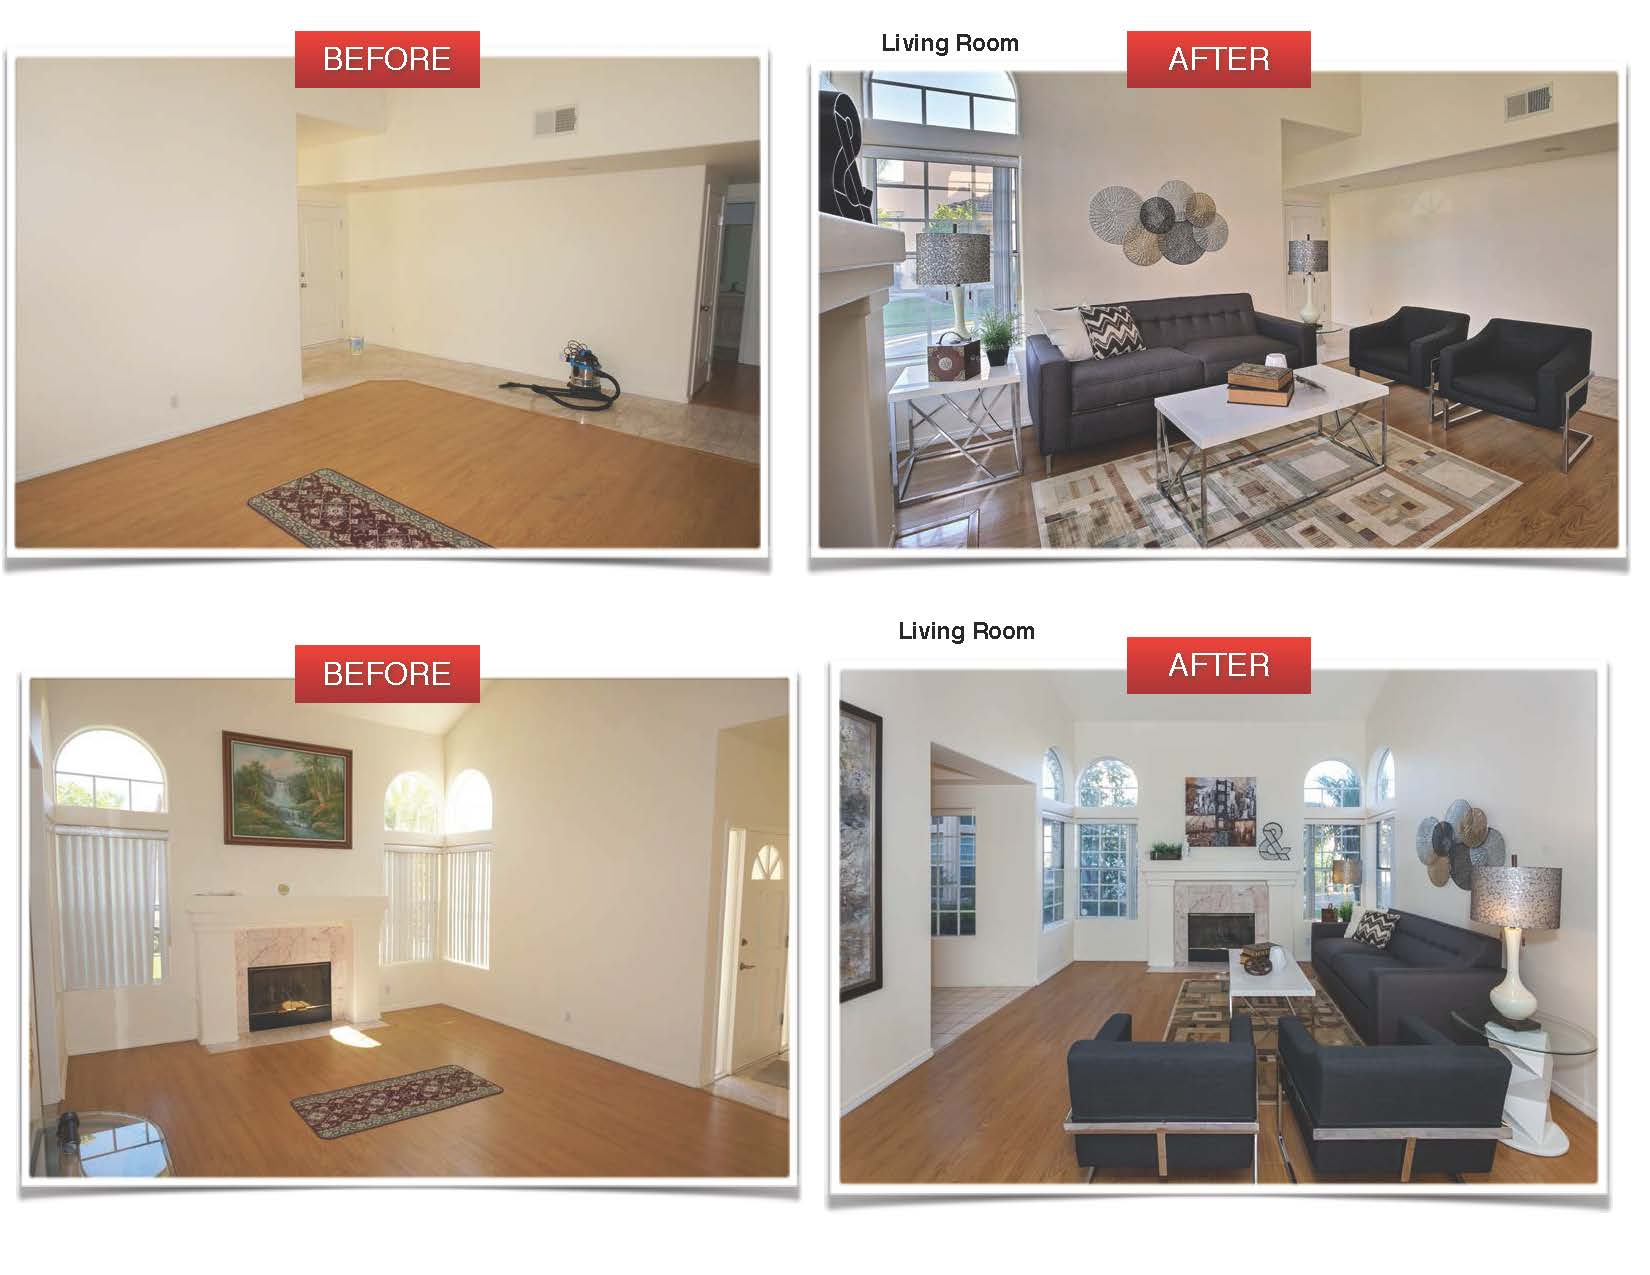 4437 Eileen Lane-before vs. after_Page_1